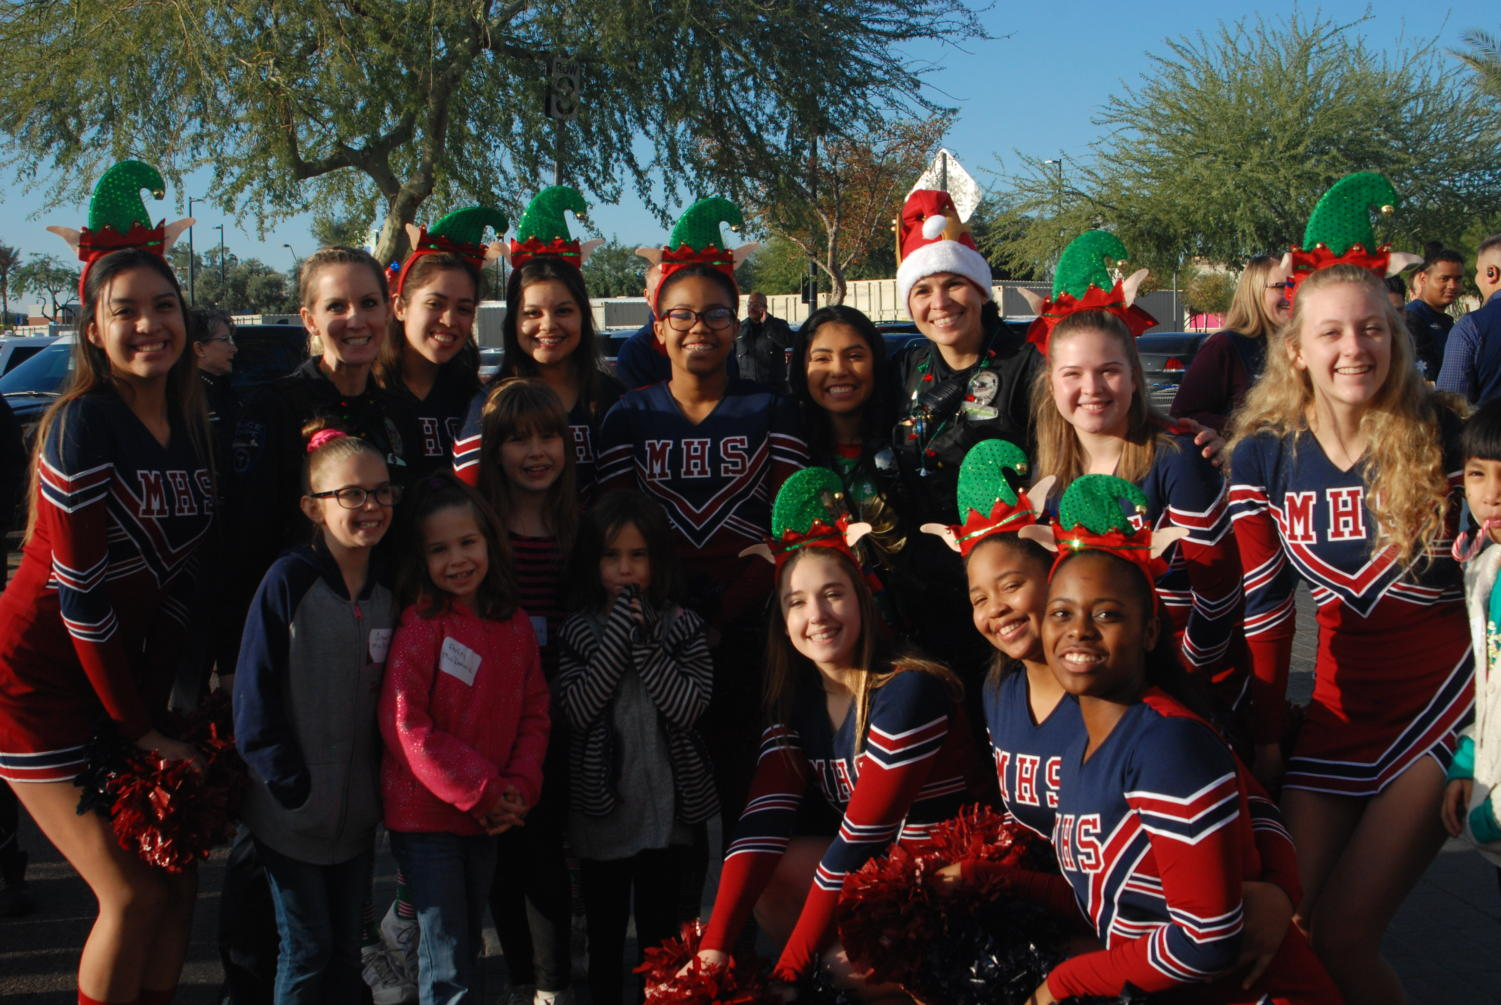 McClintock+Varsity+Cheer+volunteered+with+Tempe+Police+in+an+annual+event+known+as+%22Shop+with+a+Cop.%22